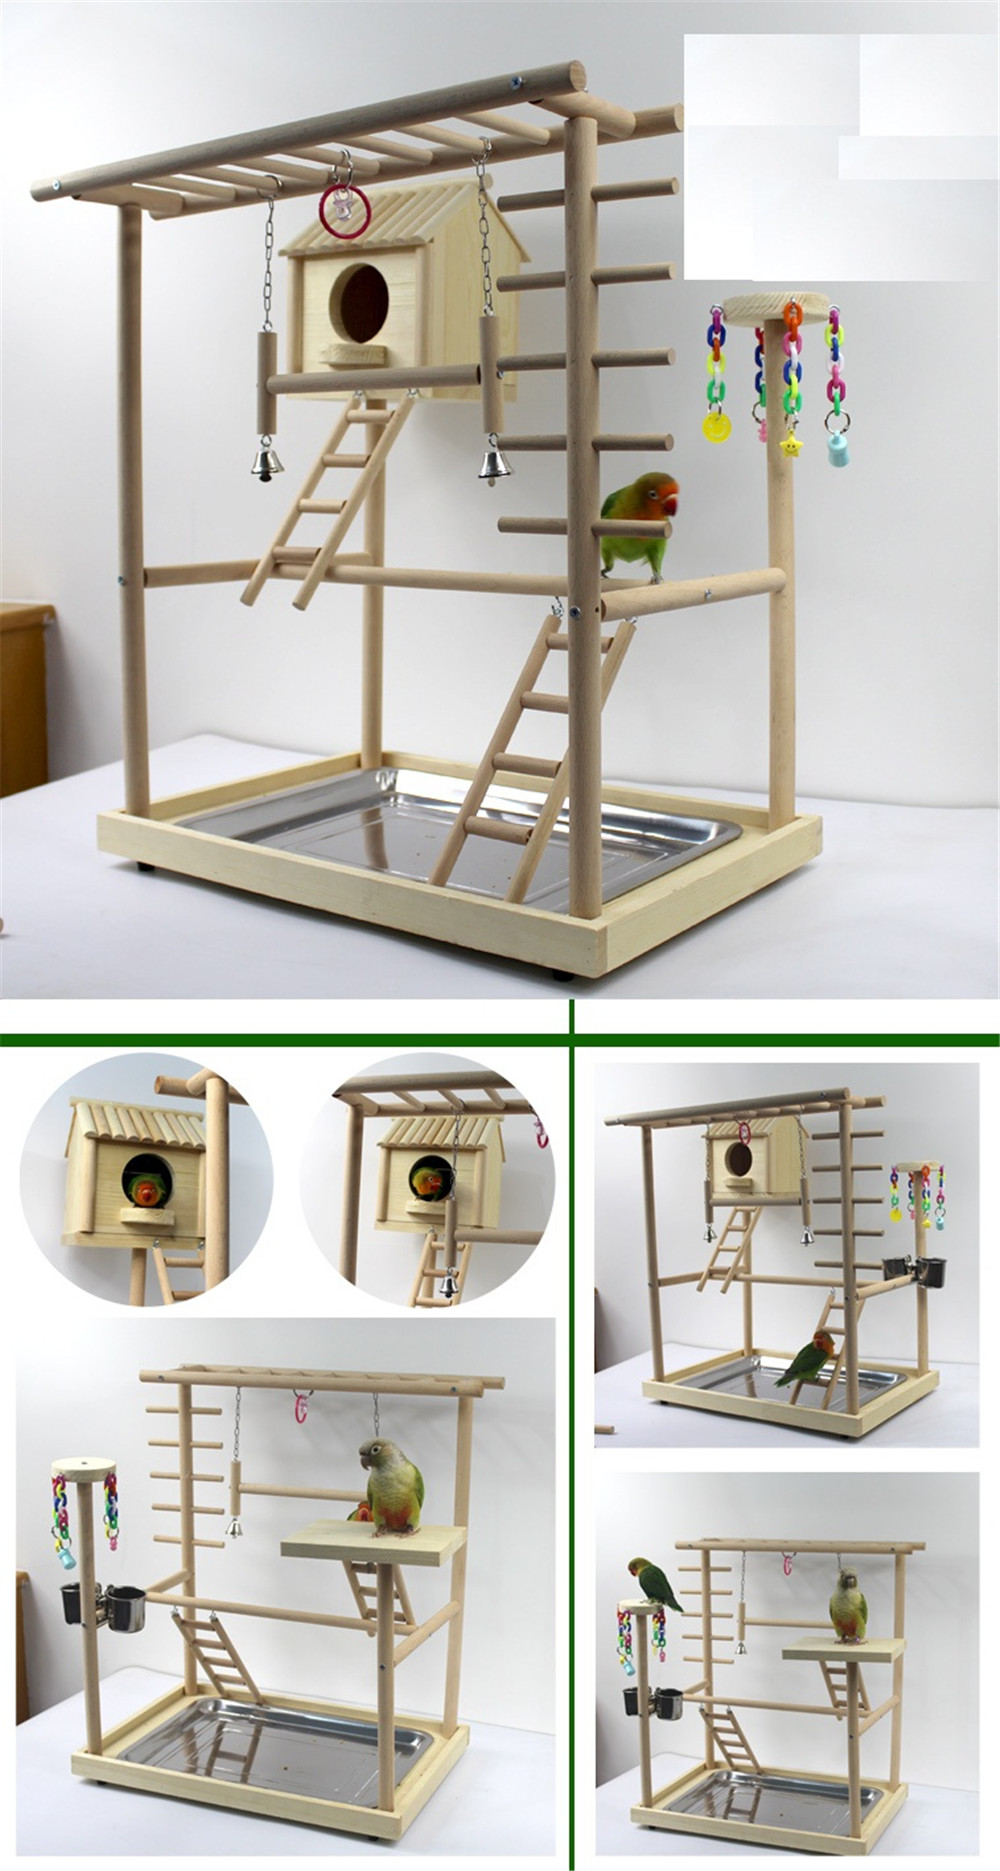 bird house with activity room